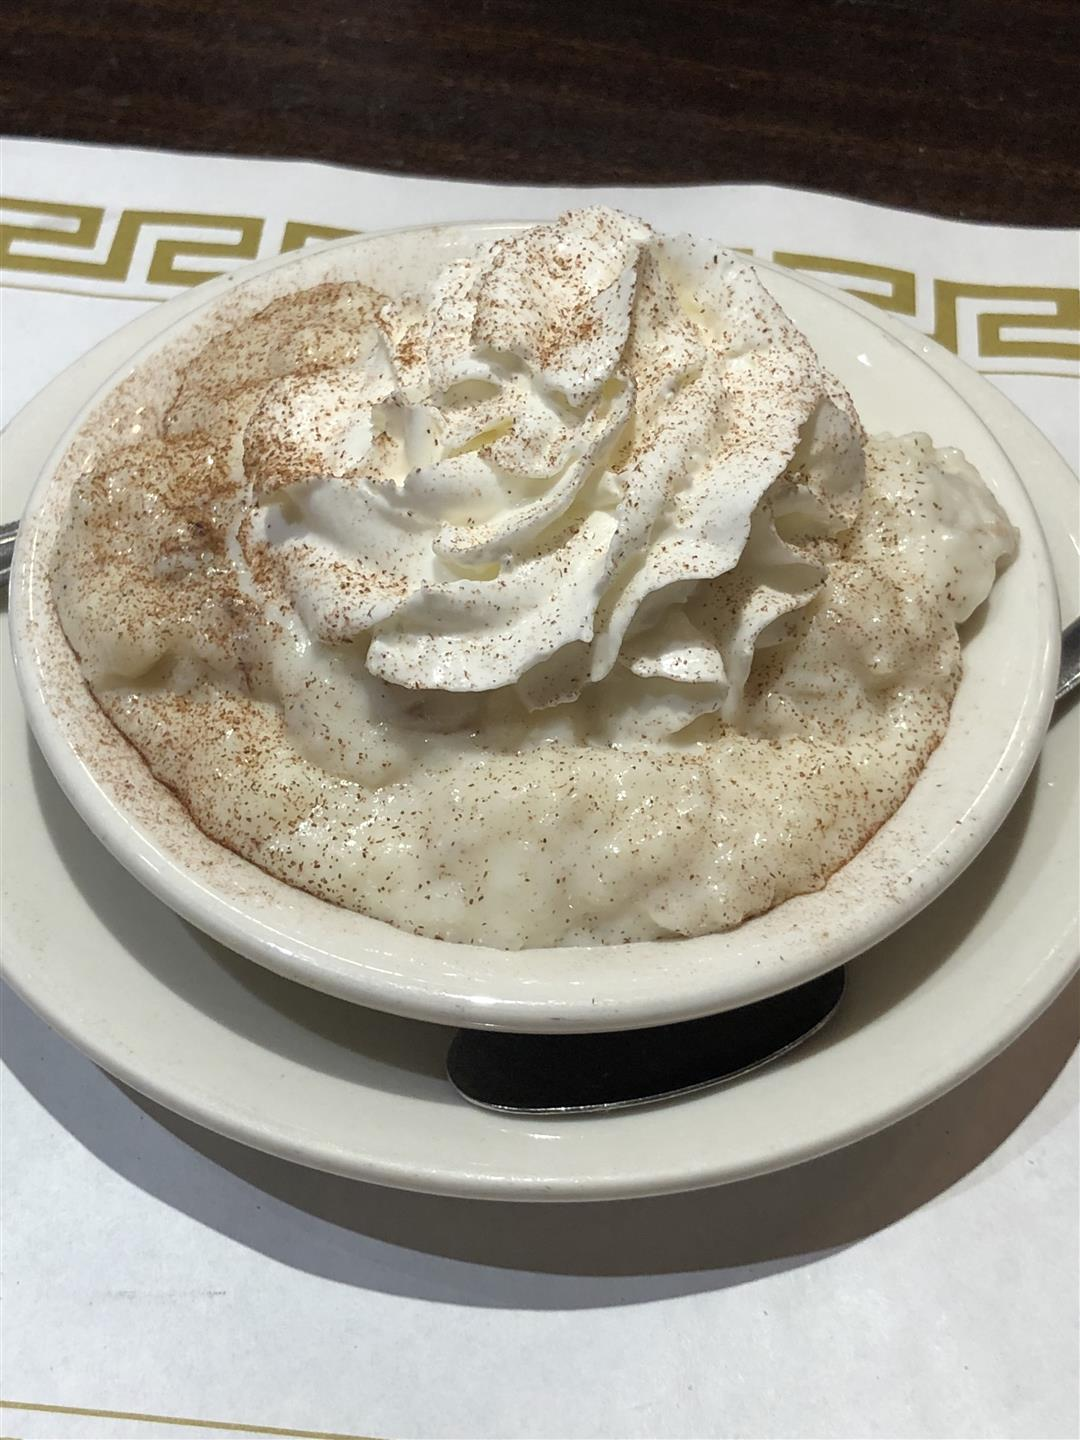 rice pudding in a bowl with whipped cream and cinnamon on top